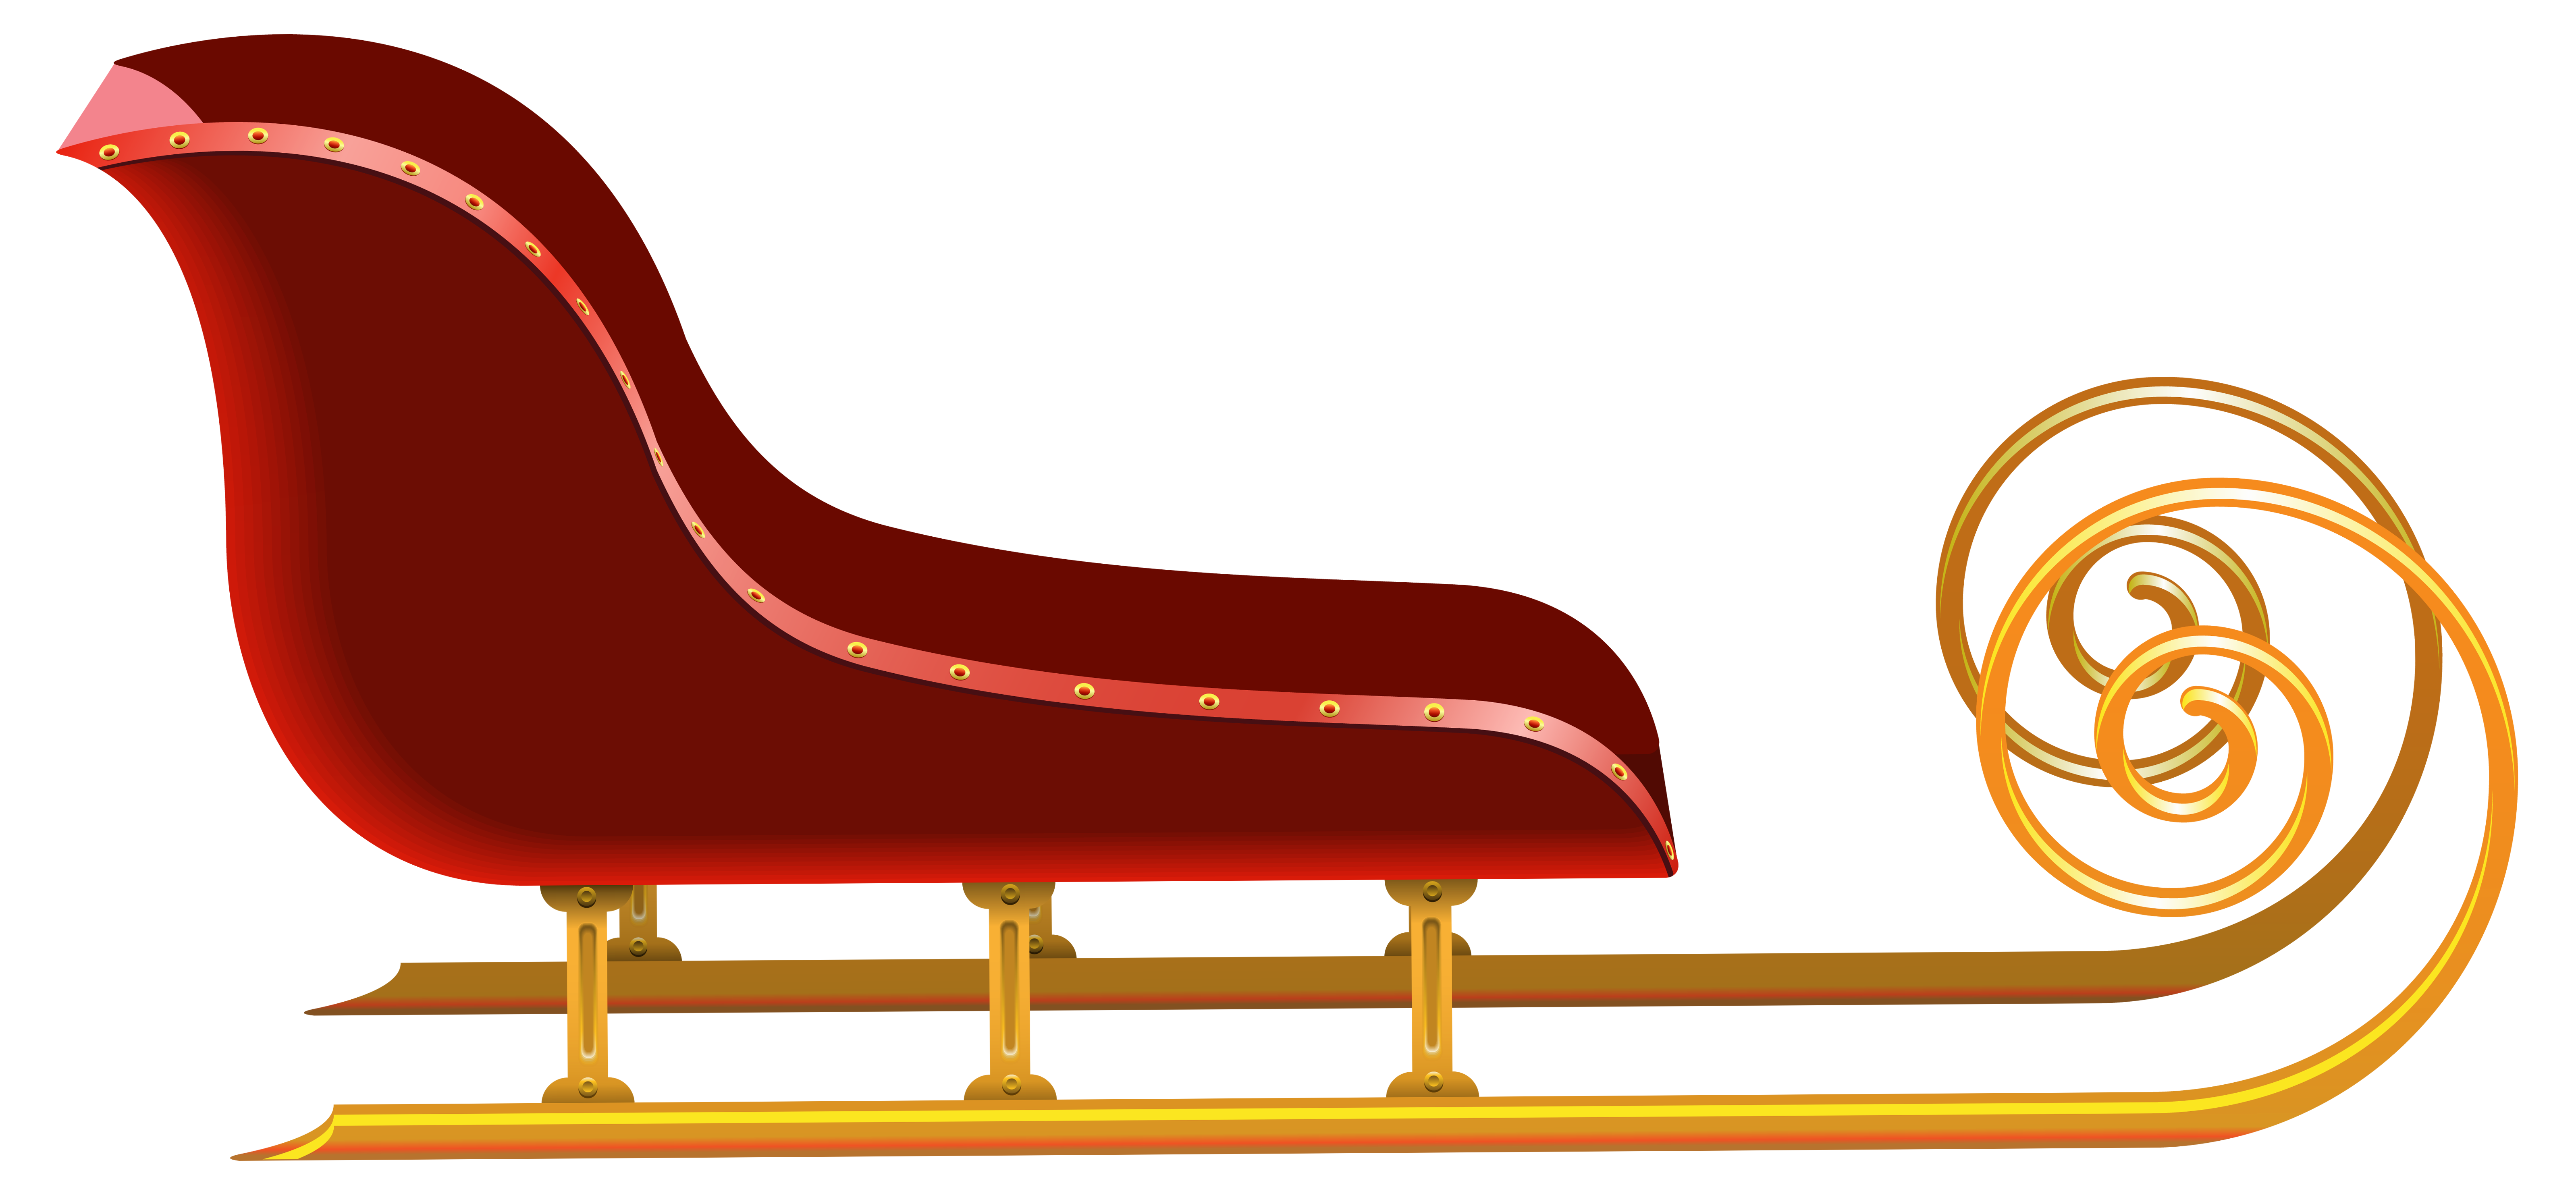 Sleigh pictures clipart royalty free download Red Sleigh PNG Clip Art Image | Gallery Yopriceville - High-Quality ... royalty free download